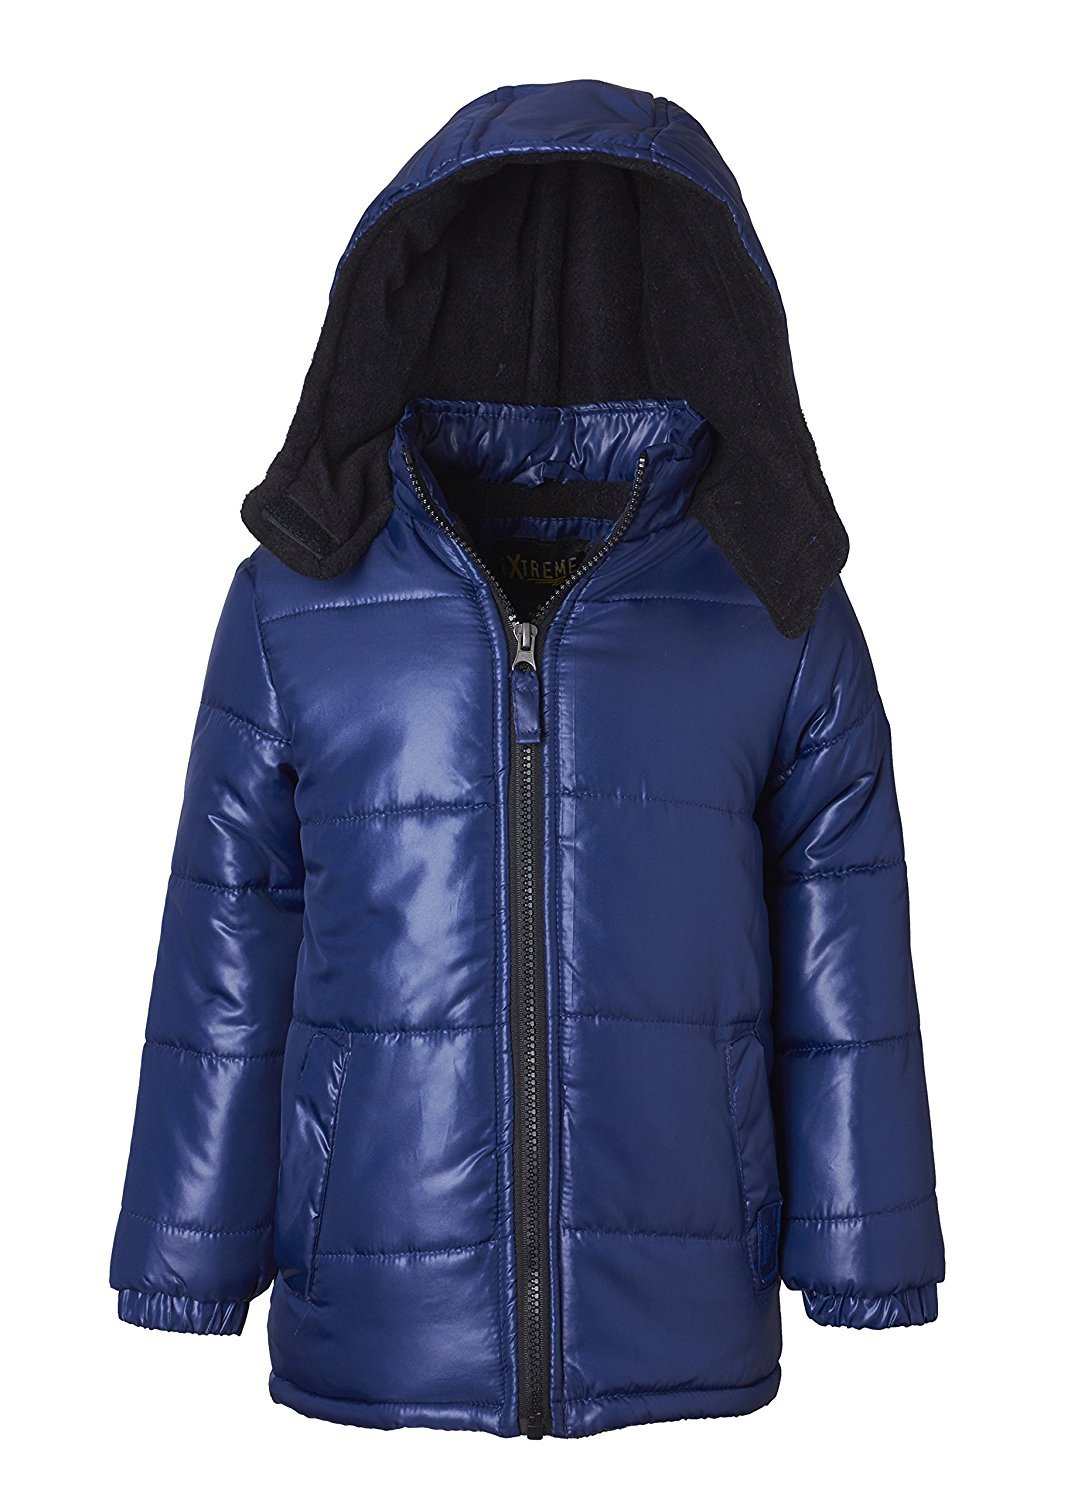 iXtreme Little Boys Down Alternative Hooded Winter Puffer Bubble Jacket Coat, Navy, 4T